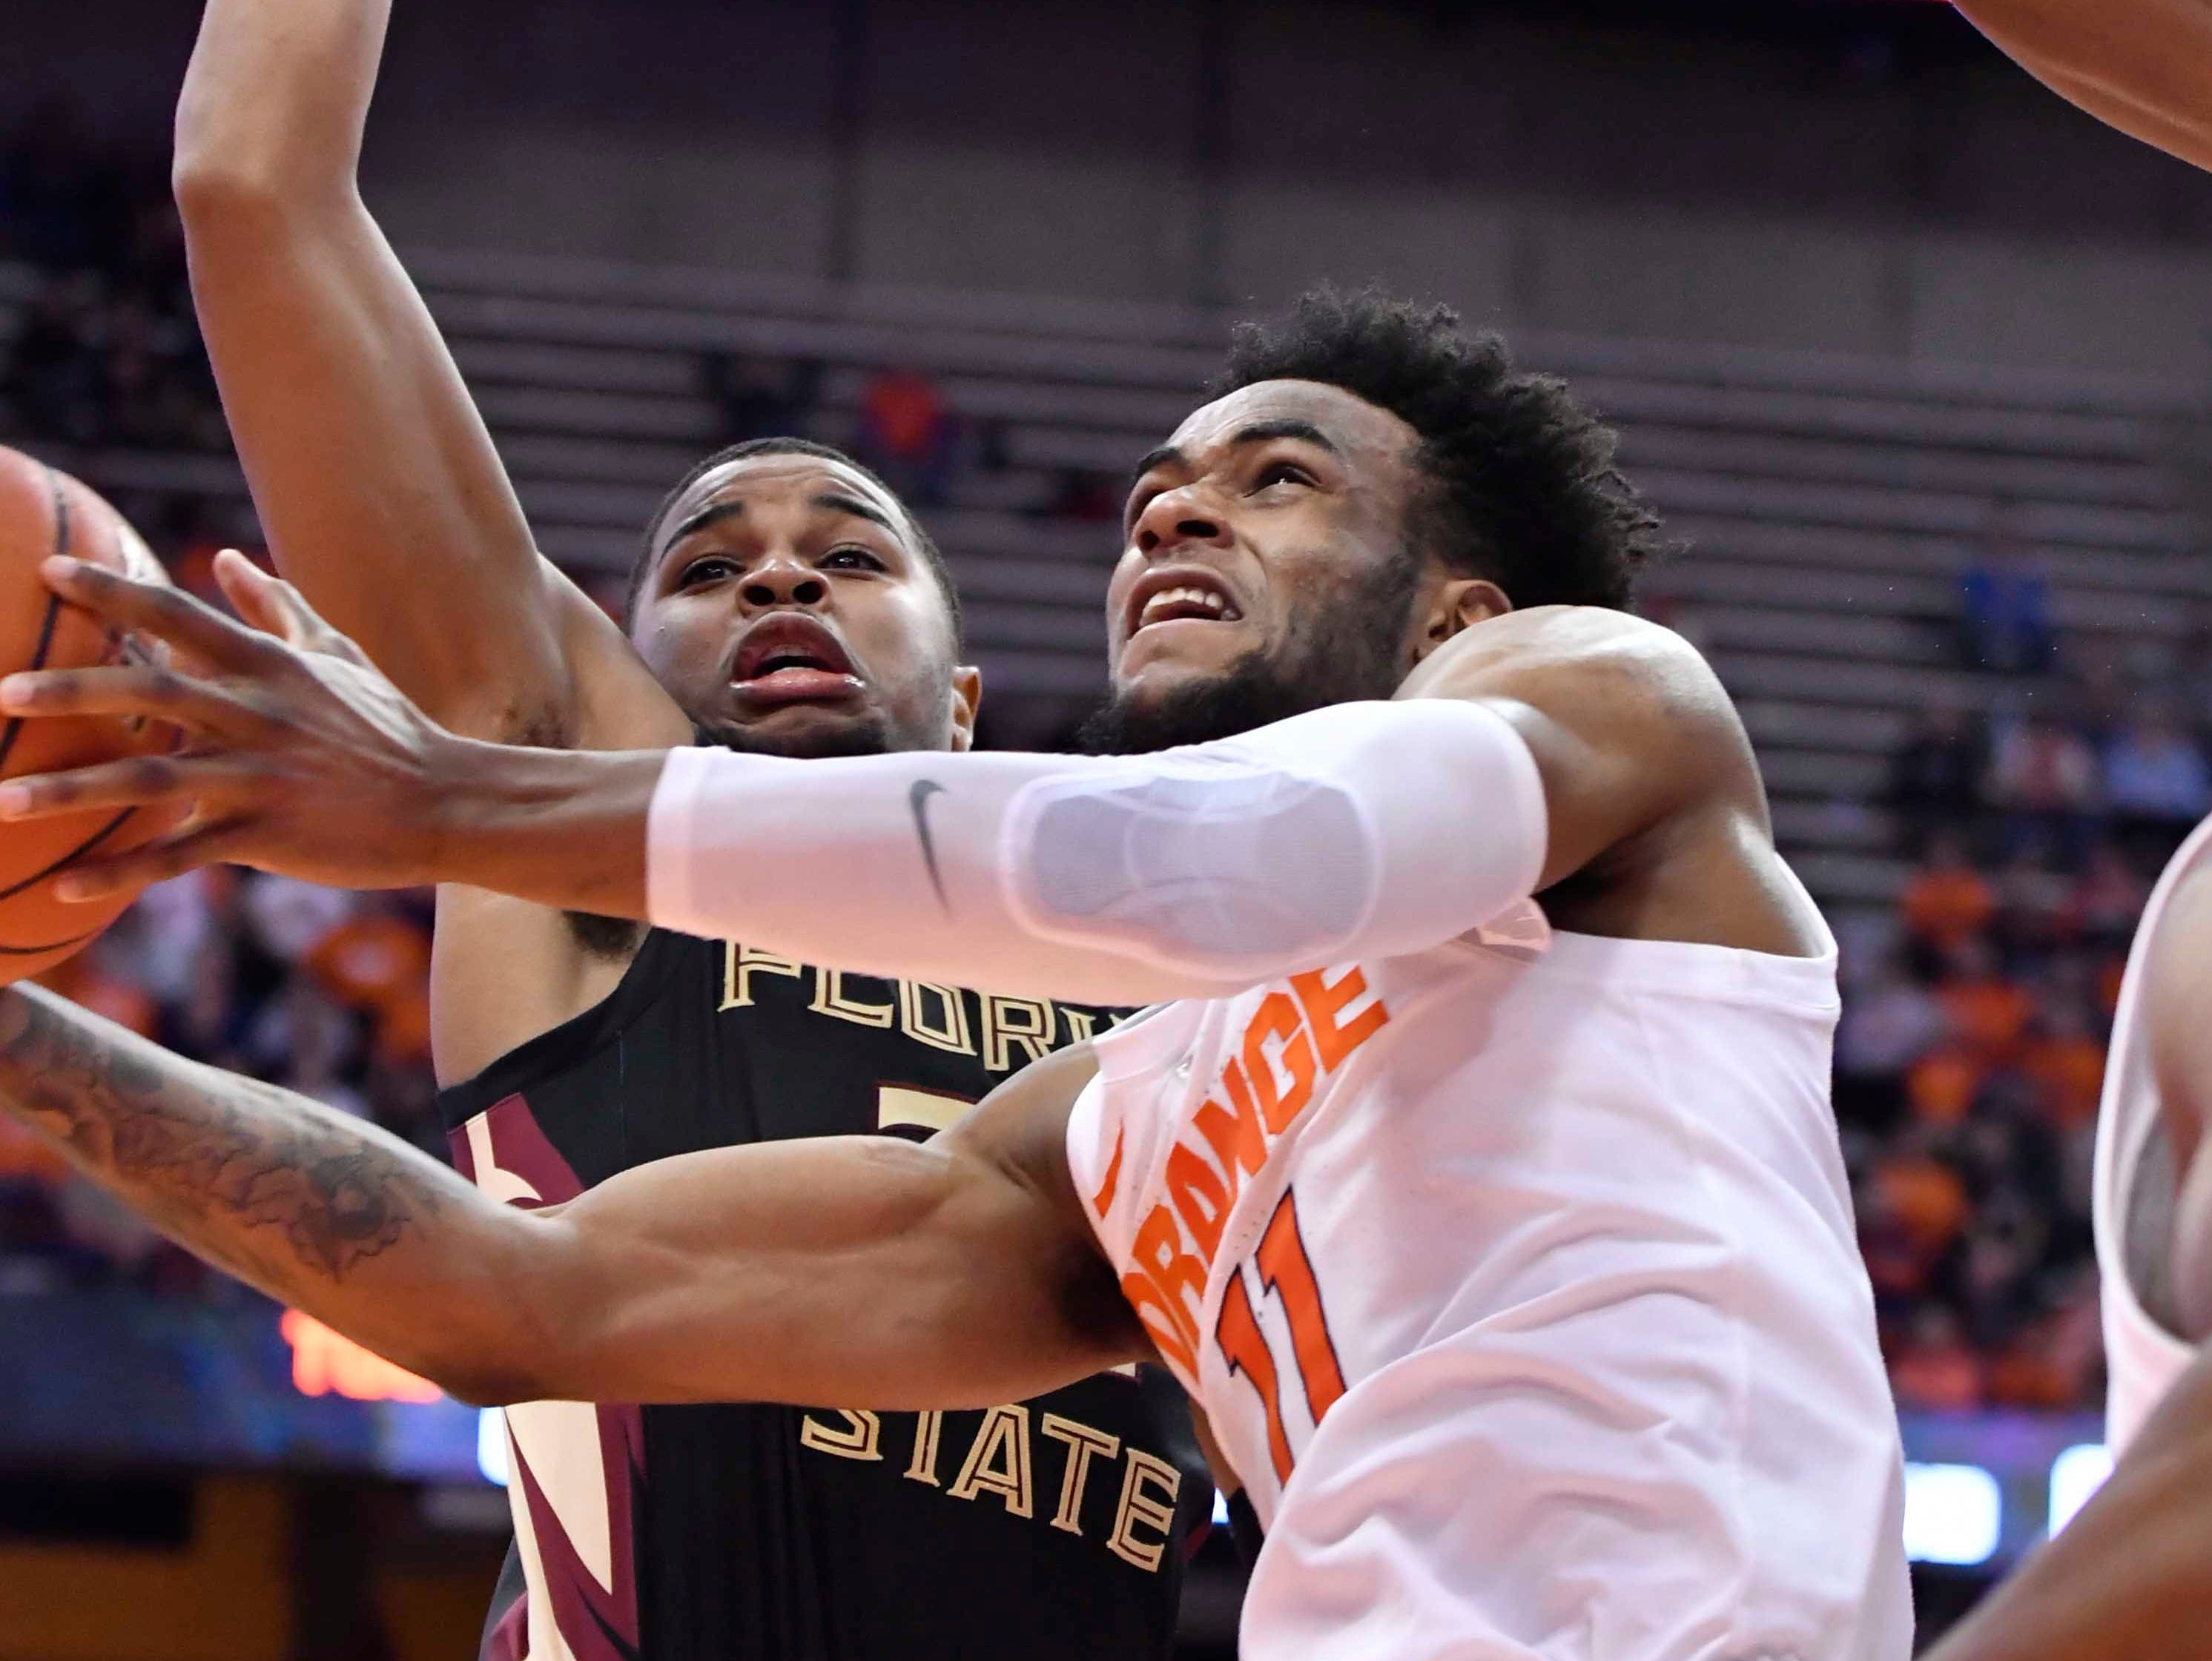 Feb 5, 2019; Syracuse, NY, USA; Syracuse Orange forward Oshae Brissett (11) manuvers to take a shot as Florida State Seminoles guard Trent Forrest (3) applies pressure in the second half at the Carrier Dome. Mandatory Credit: Mark Konezny-USA TODAY Sports